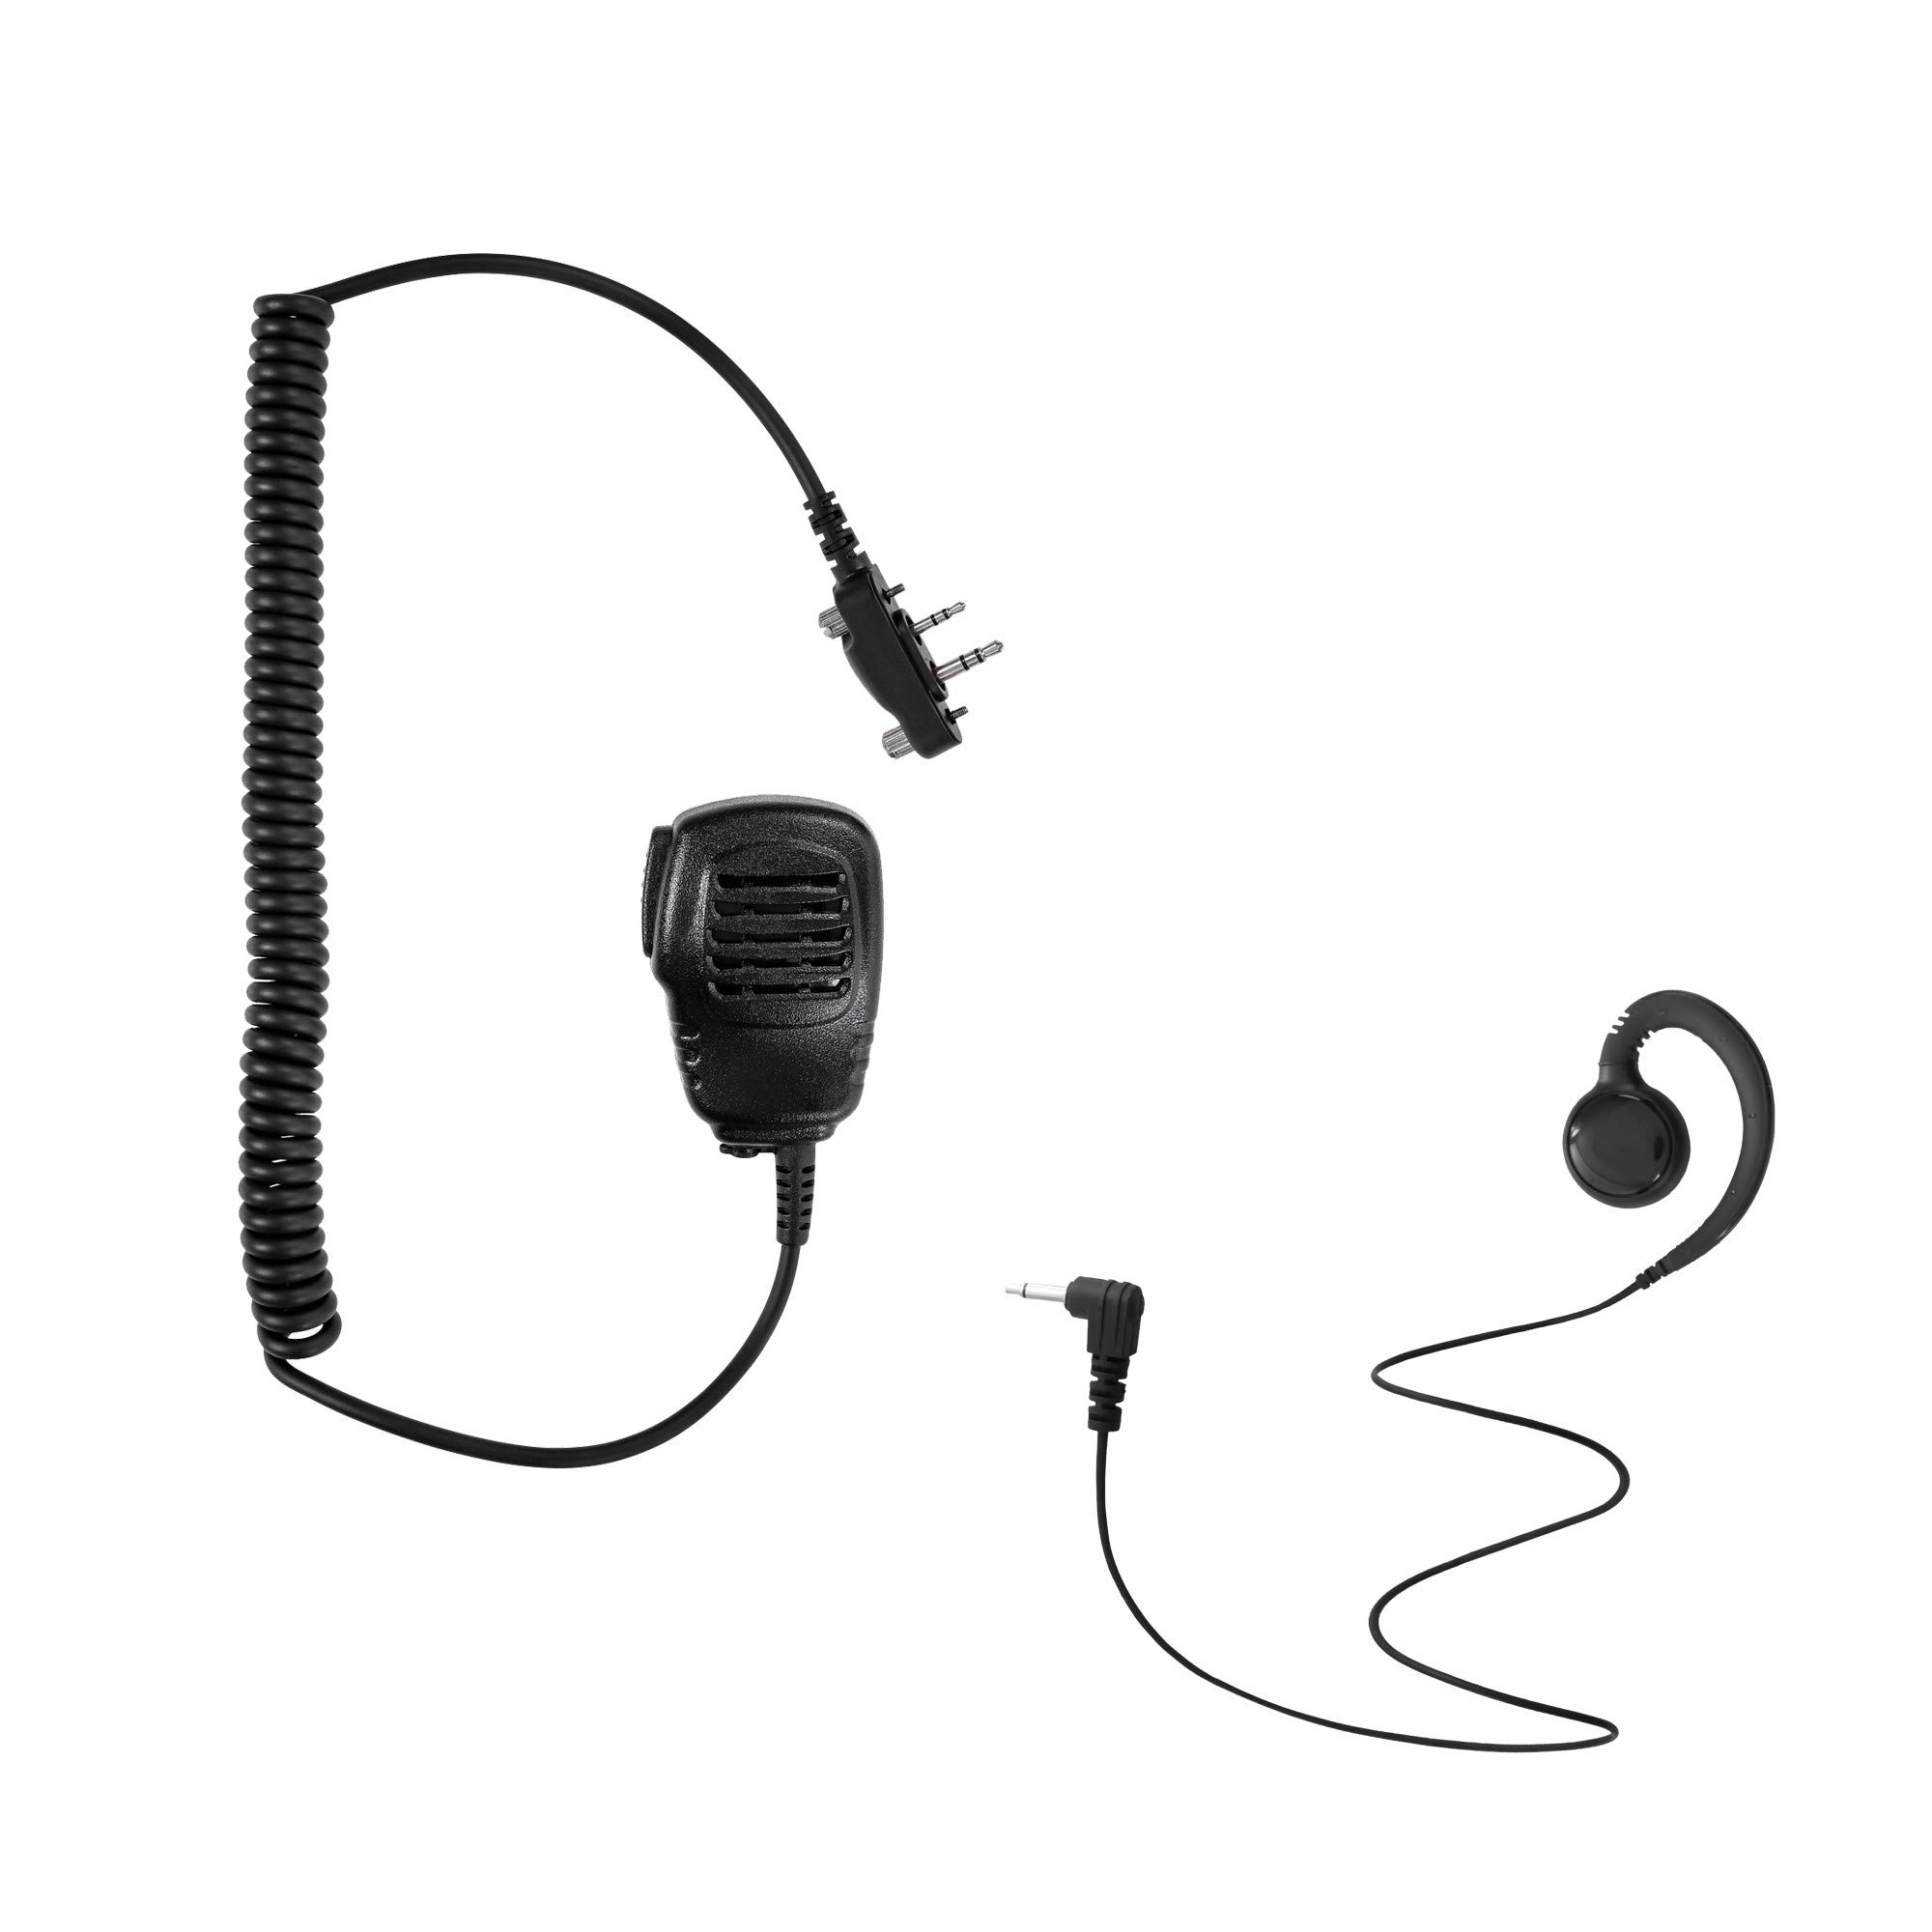 Maxtop APM100ARP3000-I2 Light Duty Shoulder Speaker Microphone + Swivel Listen Only Earpiece for ICOM